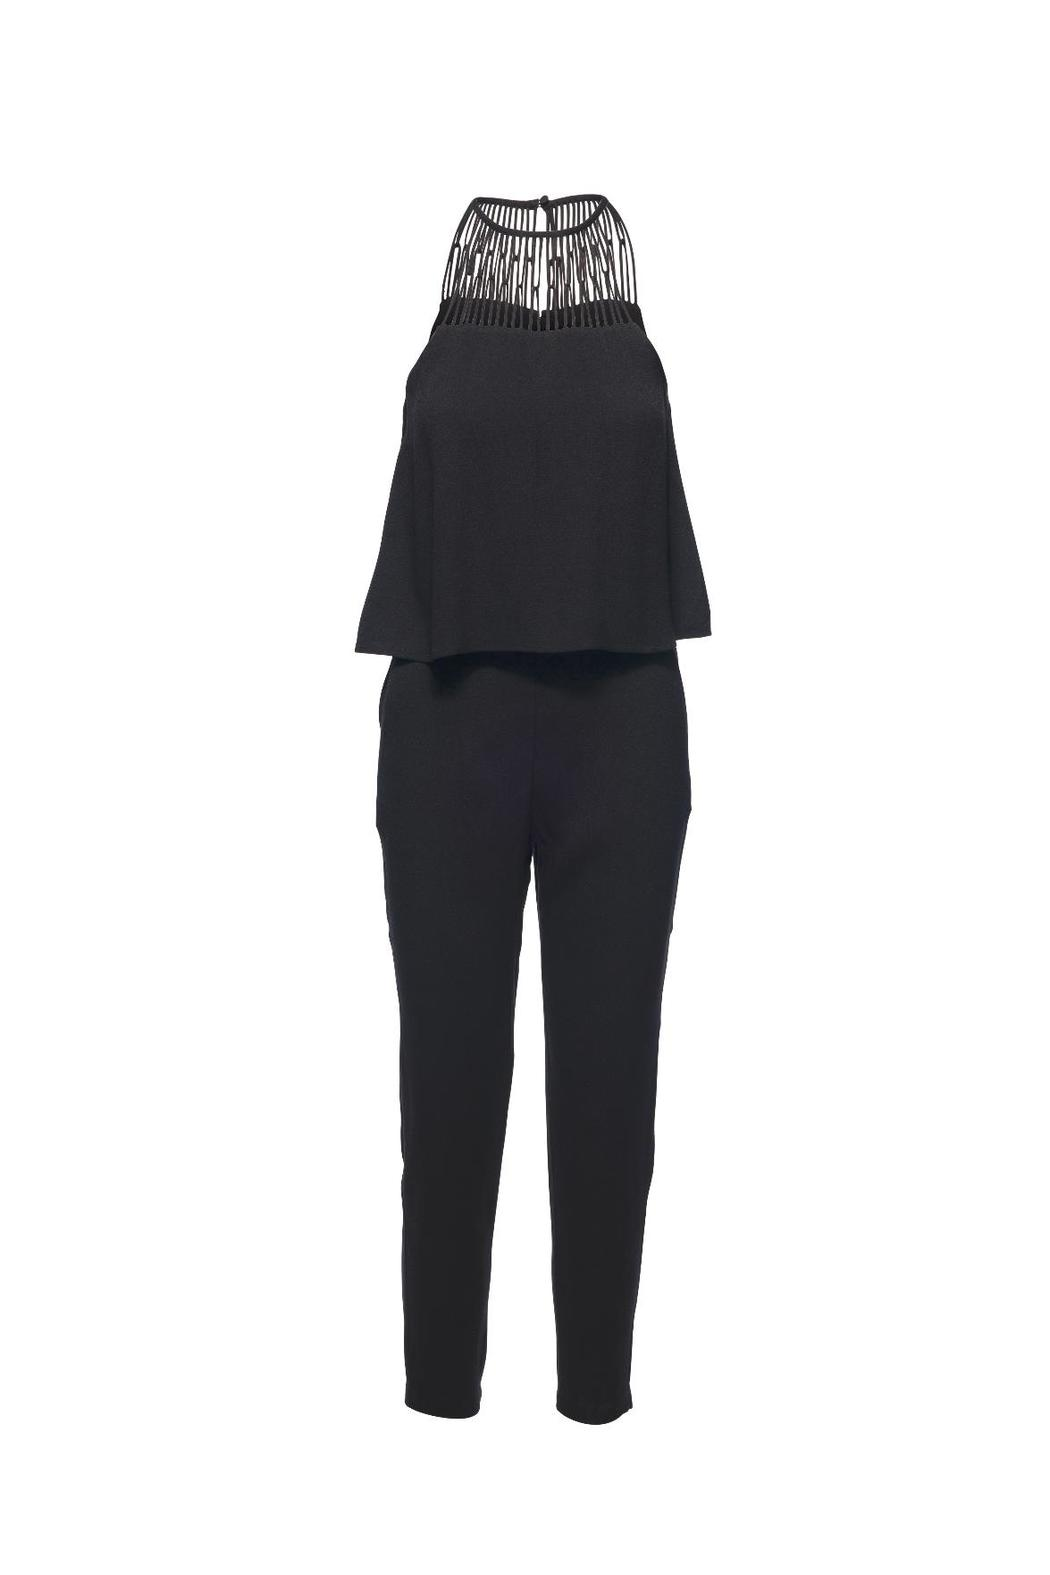 Ella Moss Skinny Leg Jumpsuit From Indiana By The Bungalow Lv